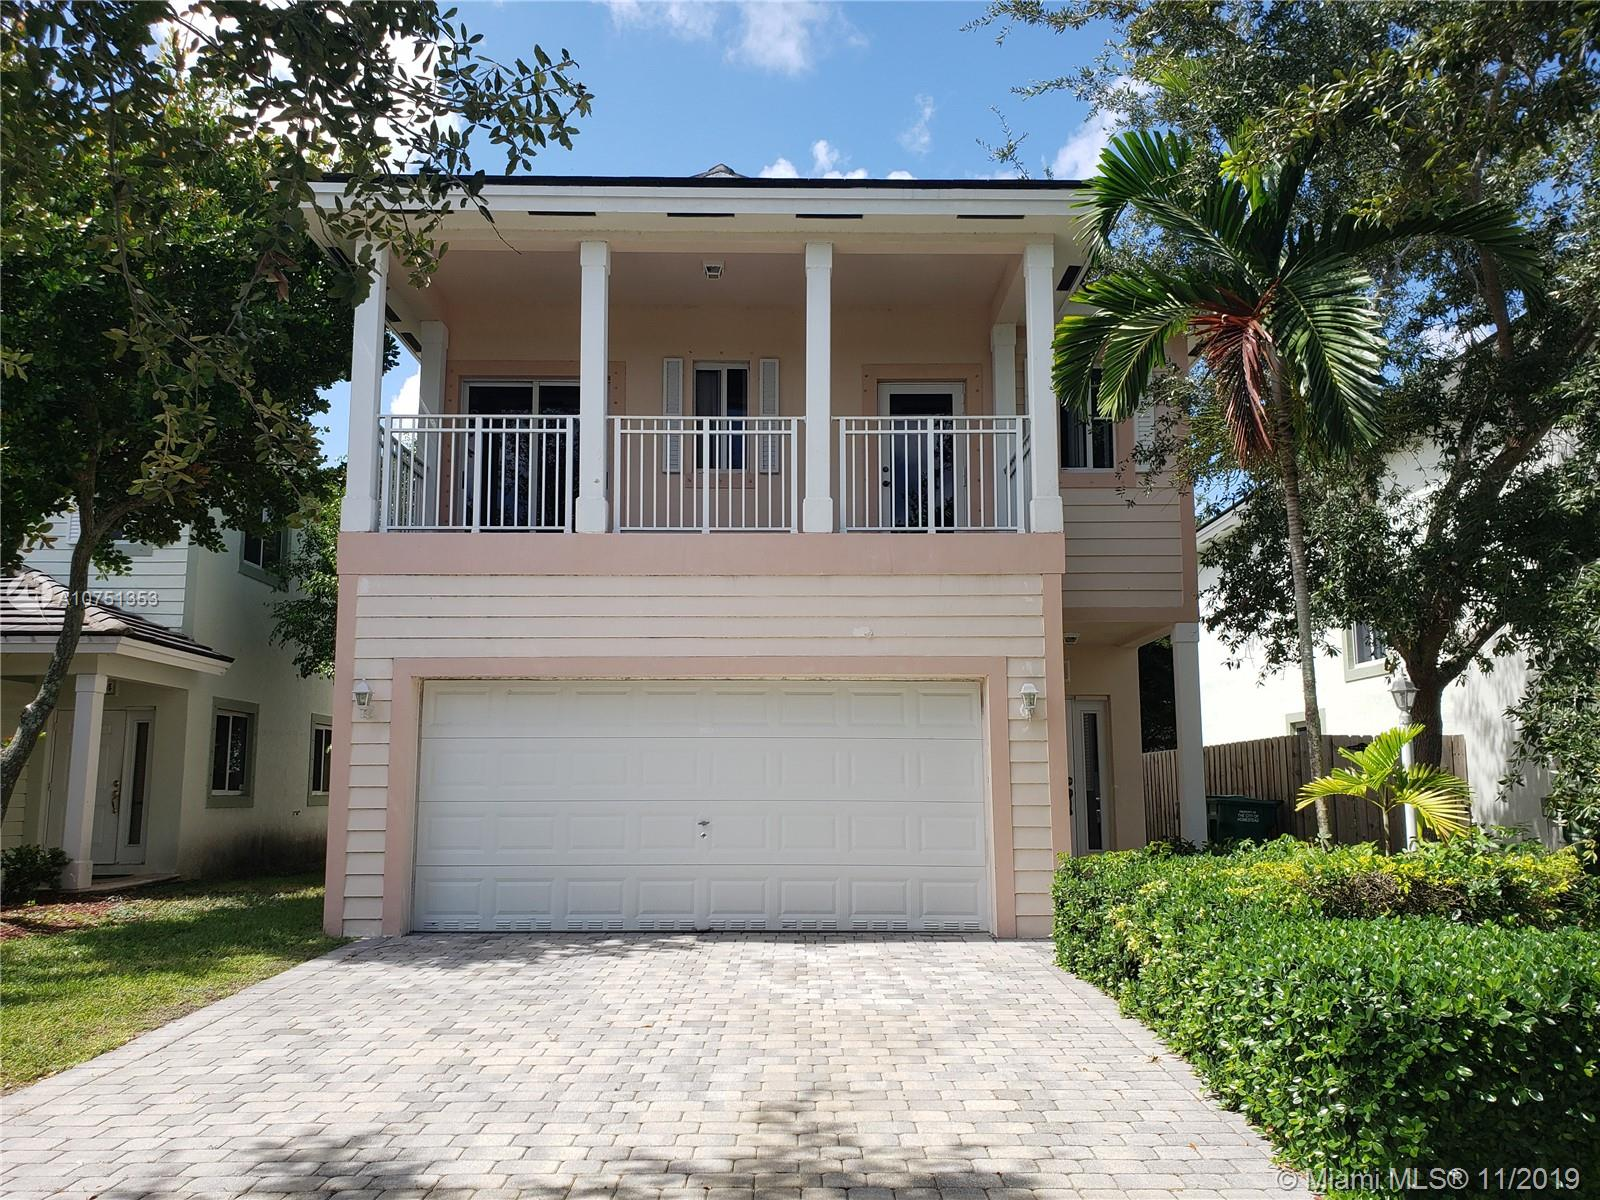 380 NE 31st Ter, Homestead, FL 33033 - Homestead, FL real estate listing